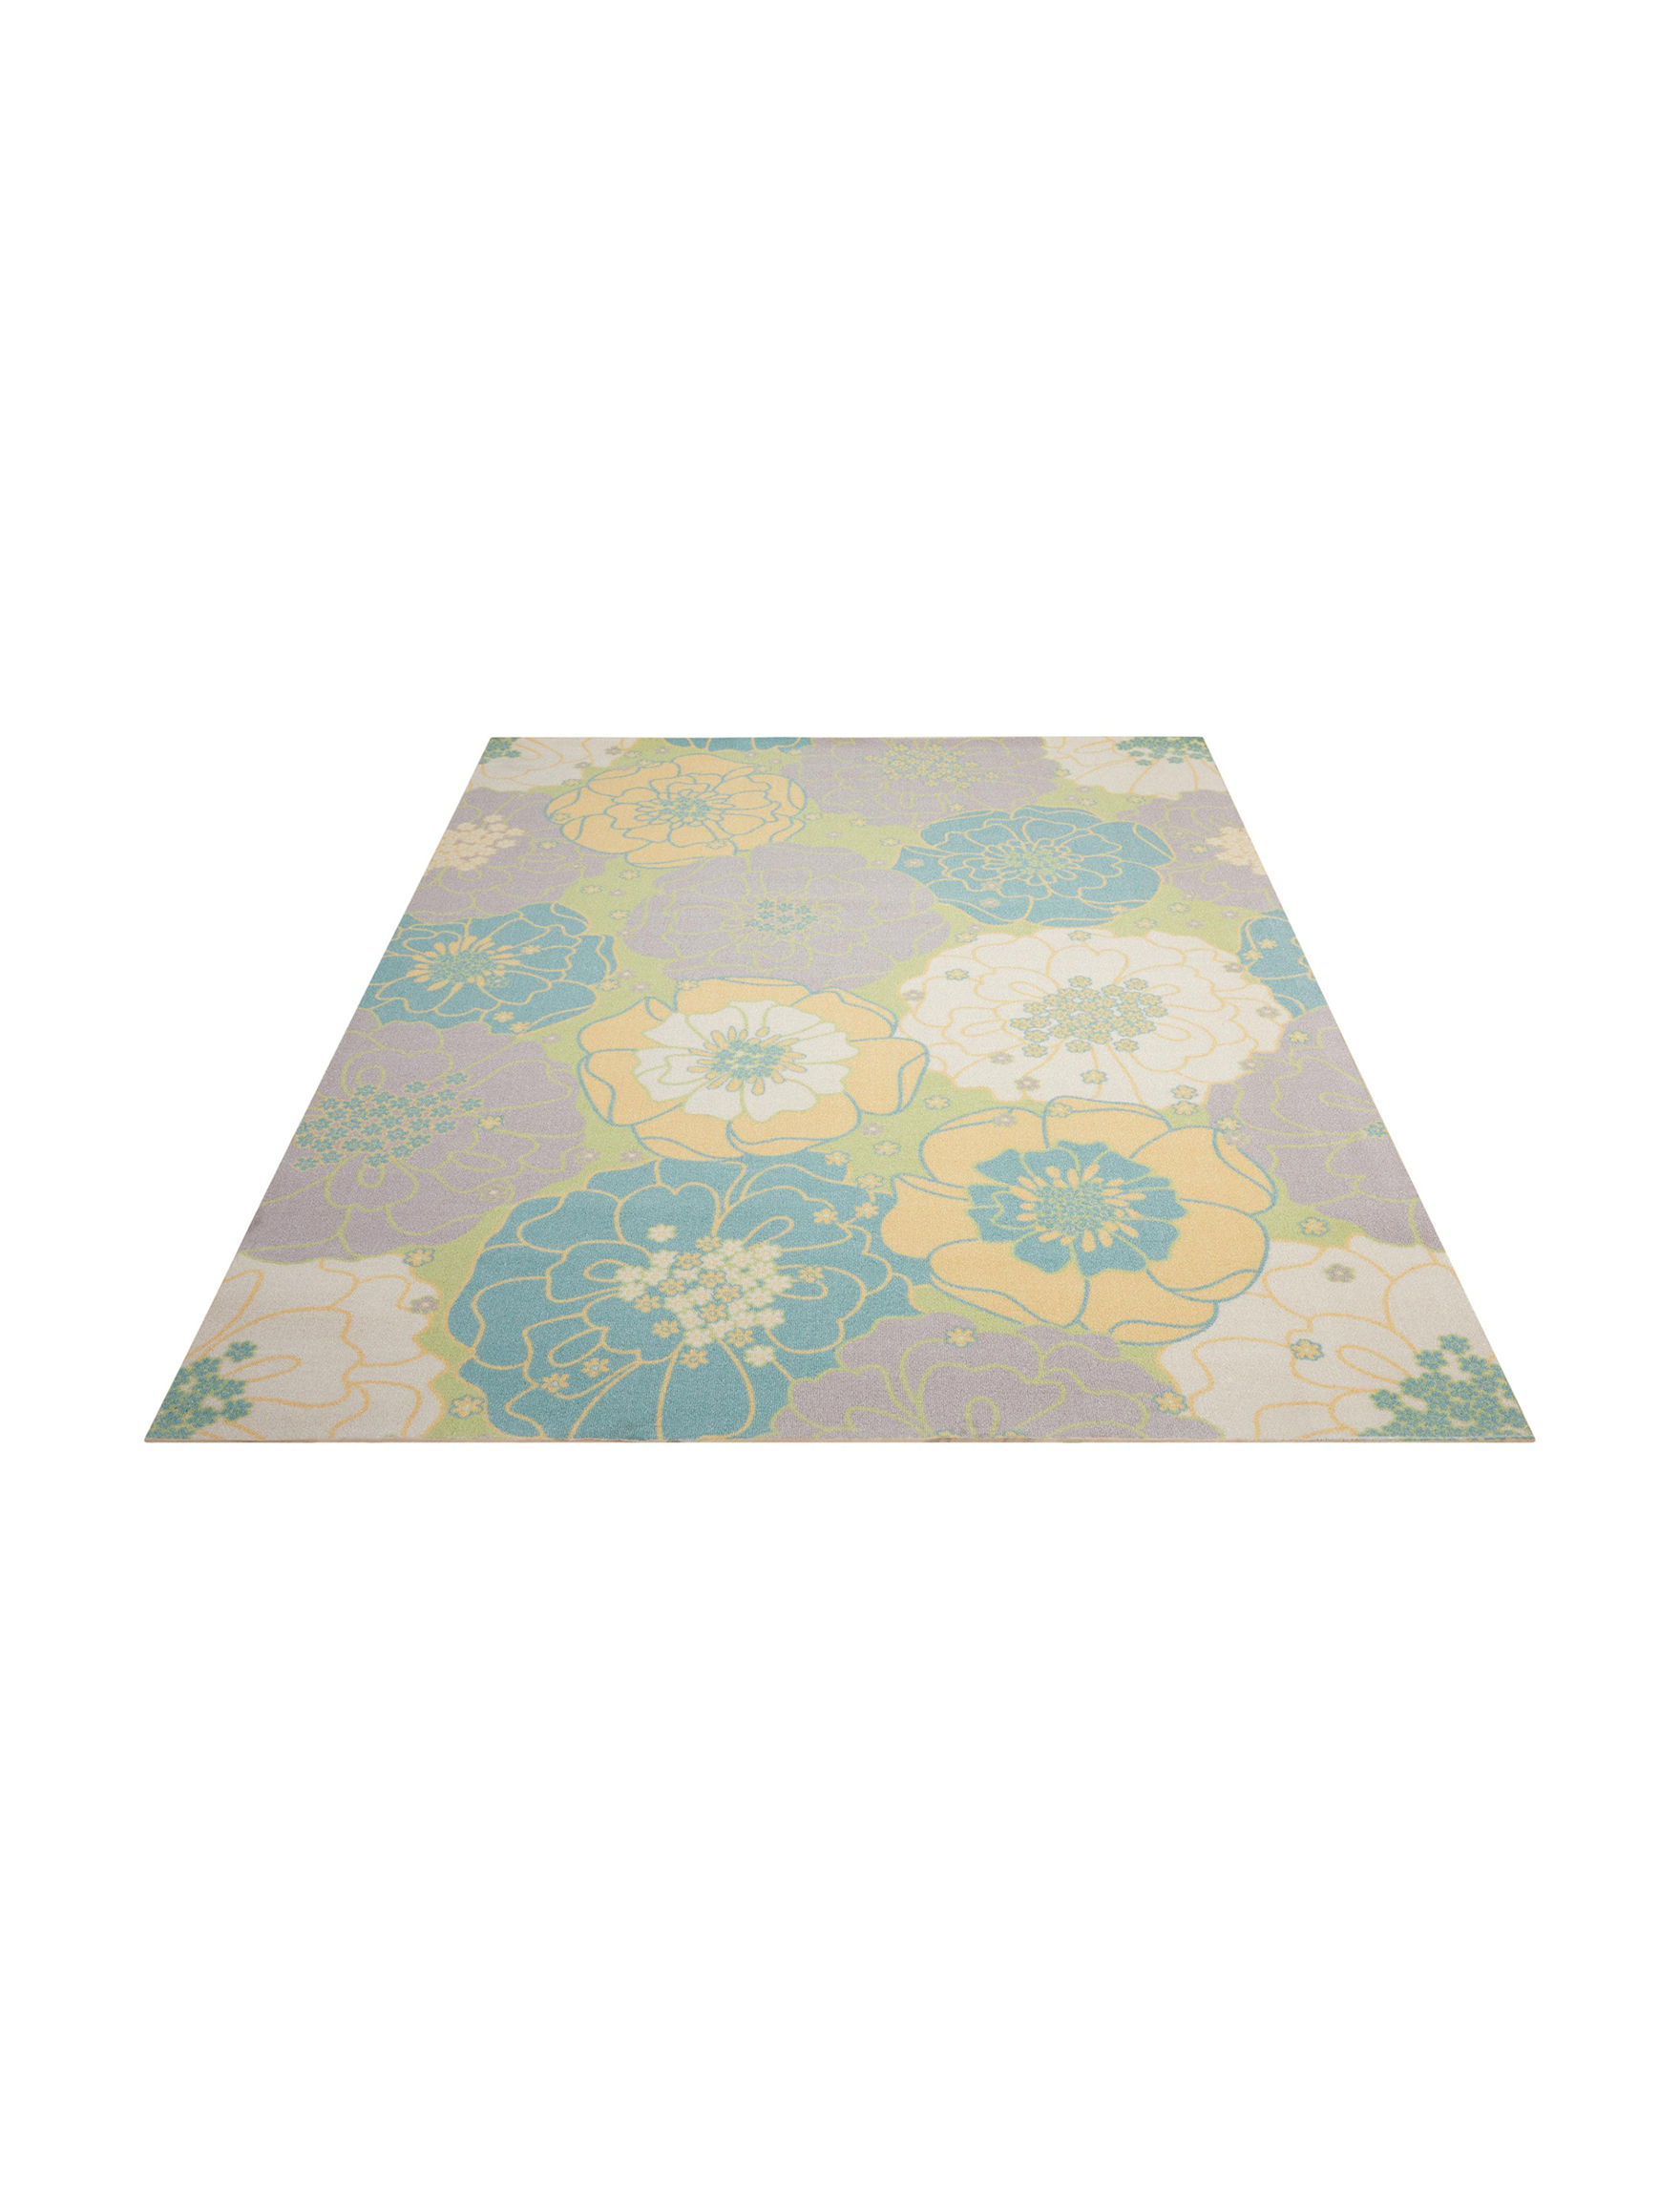 Nourison Green Accent Rugs Area Rugs Outdoor Rugs & Doormats Runners Outdoor Decor Rugs